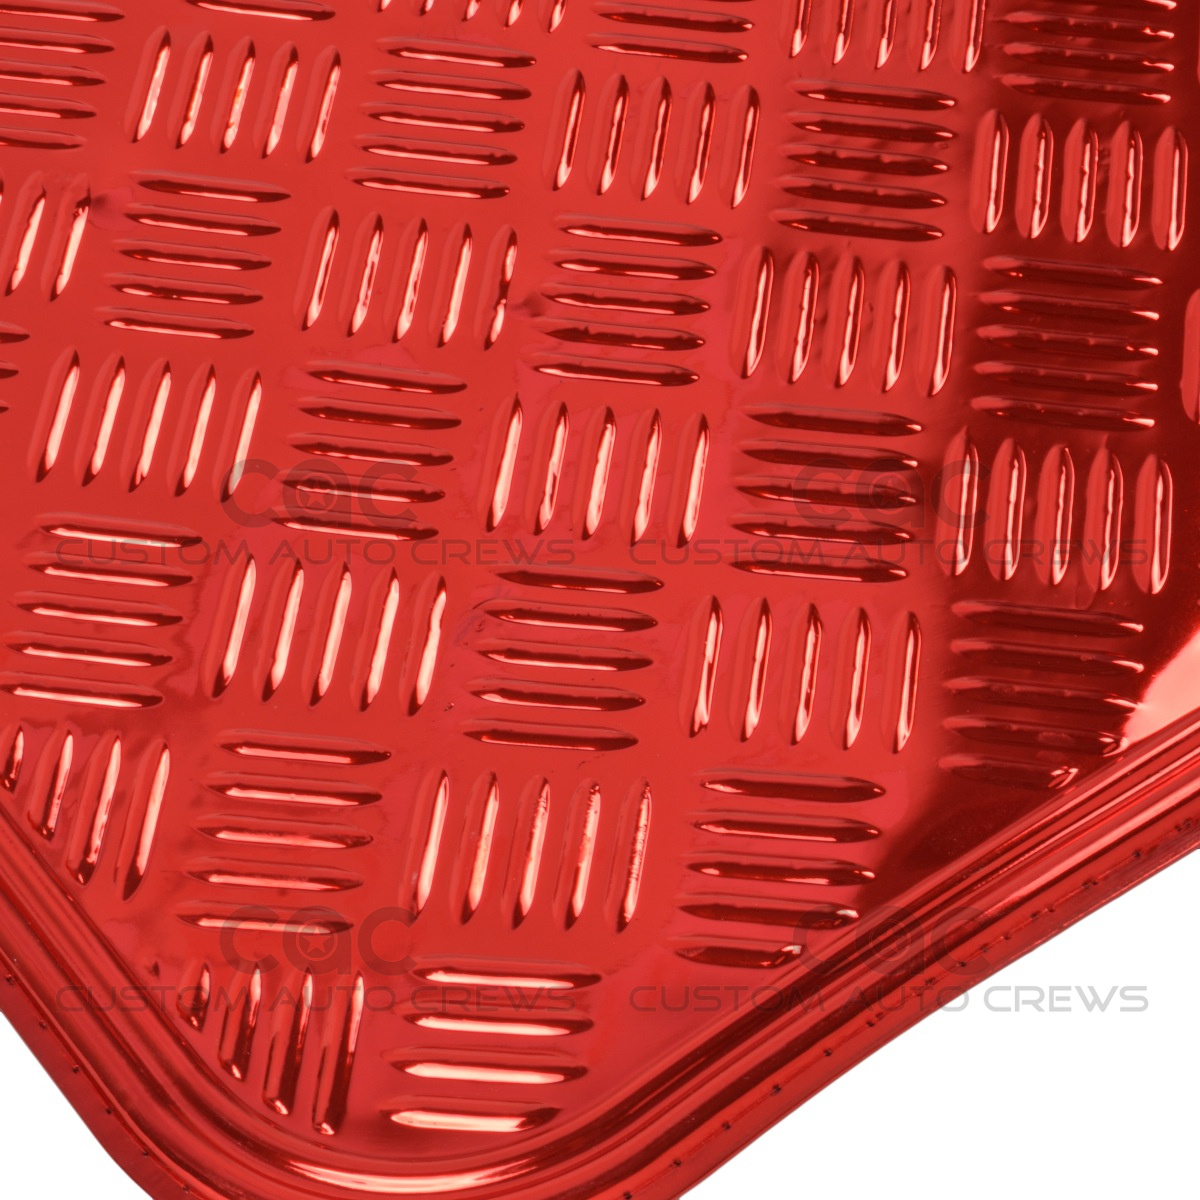 Red Metallic Rubber Floor Mats Set 4pc Car Interior Set Hd